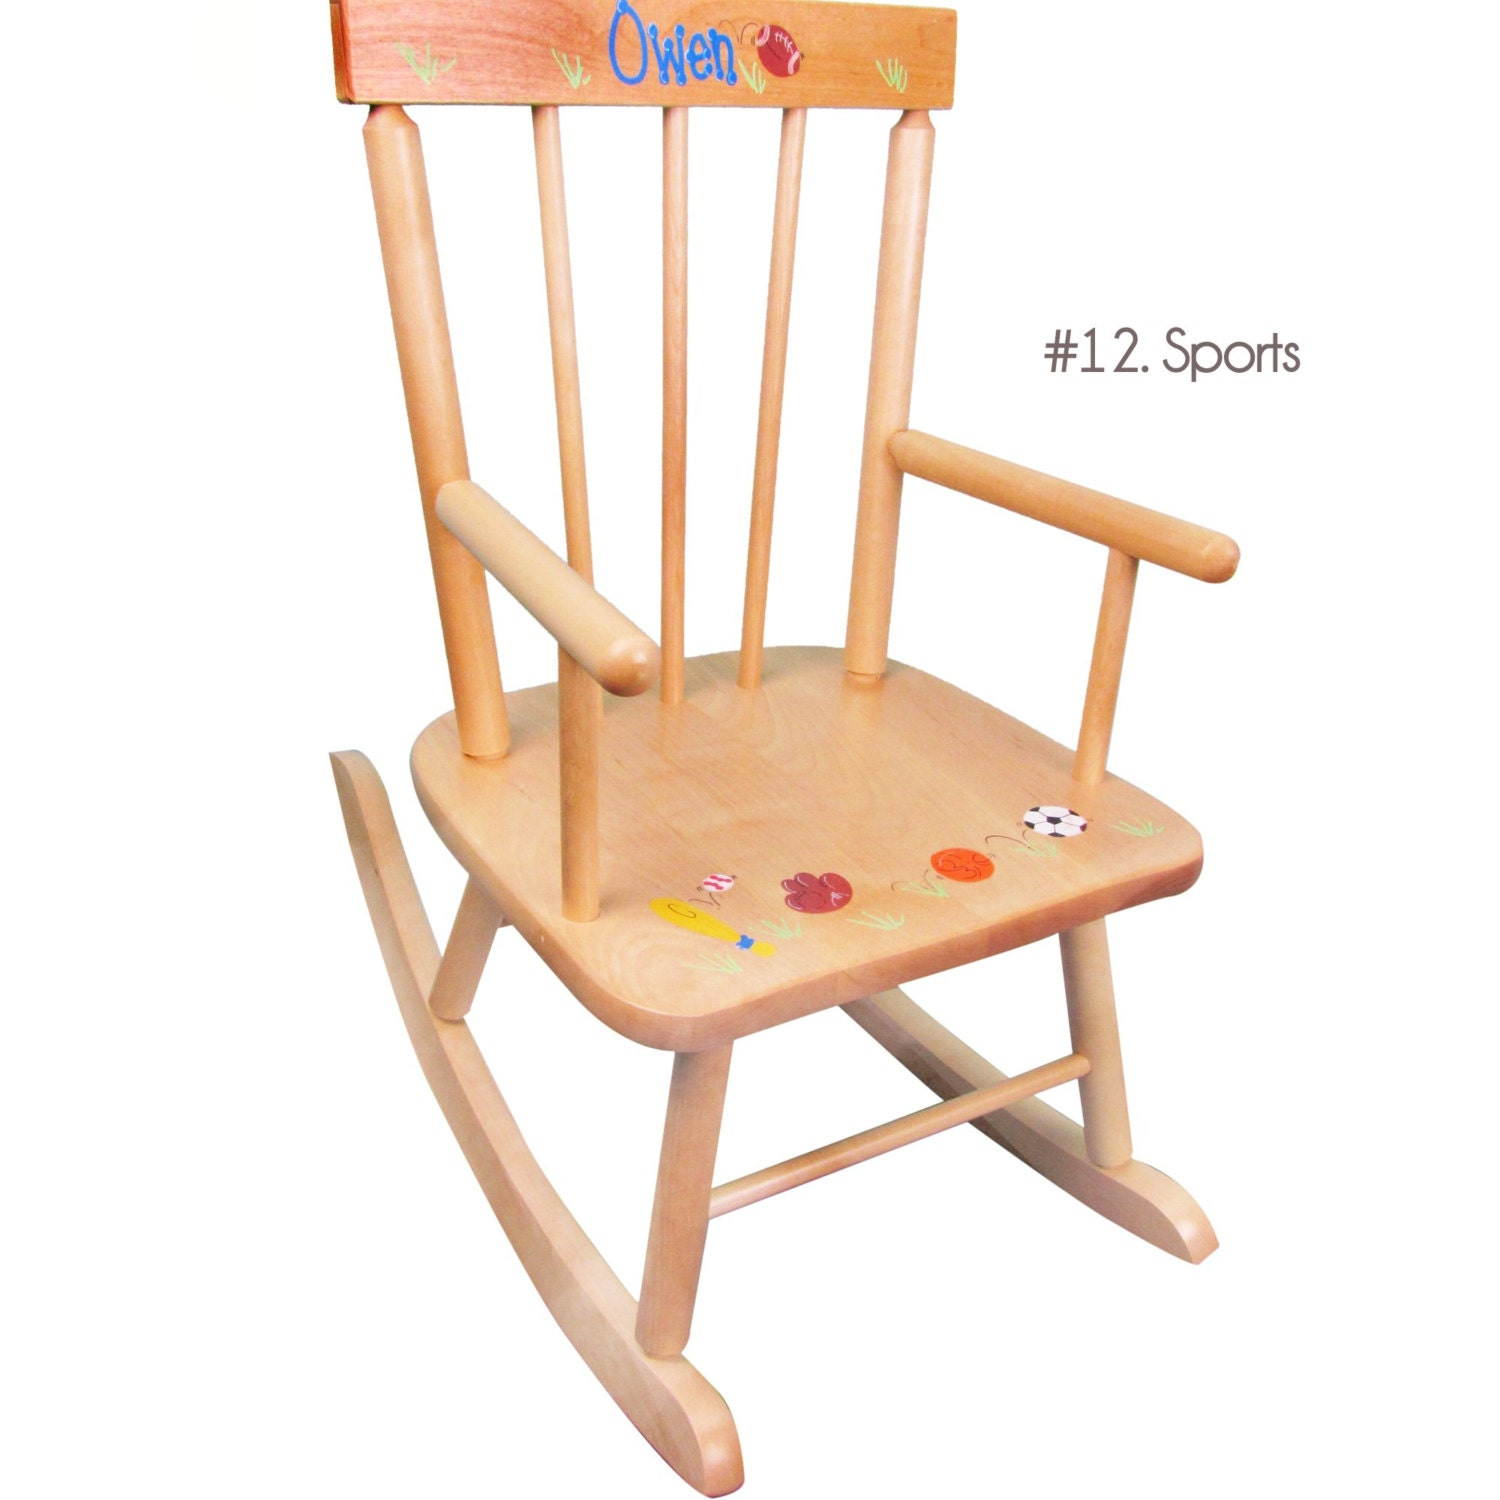 Childs Hand Painted Personalized Rocking Chair For Toddler